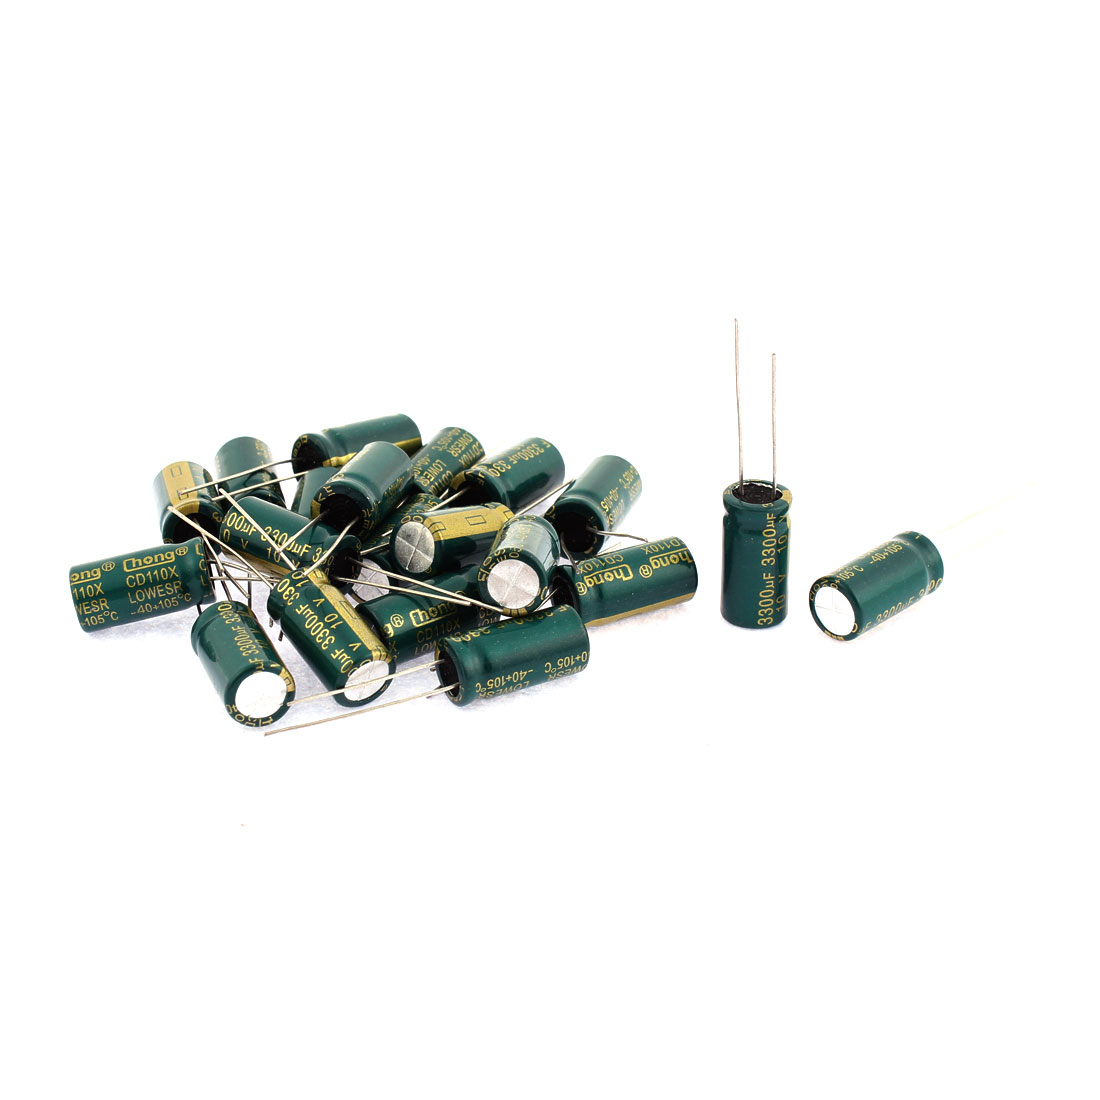 20PCS Radial Lead Aluminum Electrolytic Capacitors 3300uF 10V